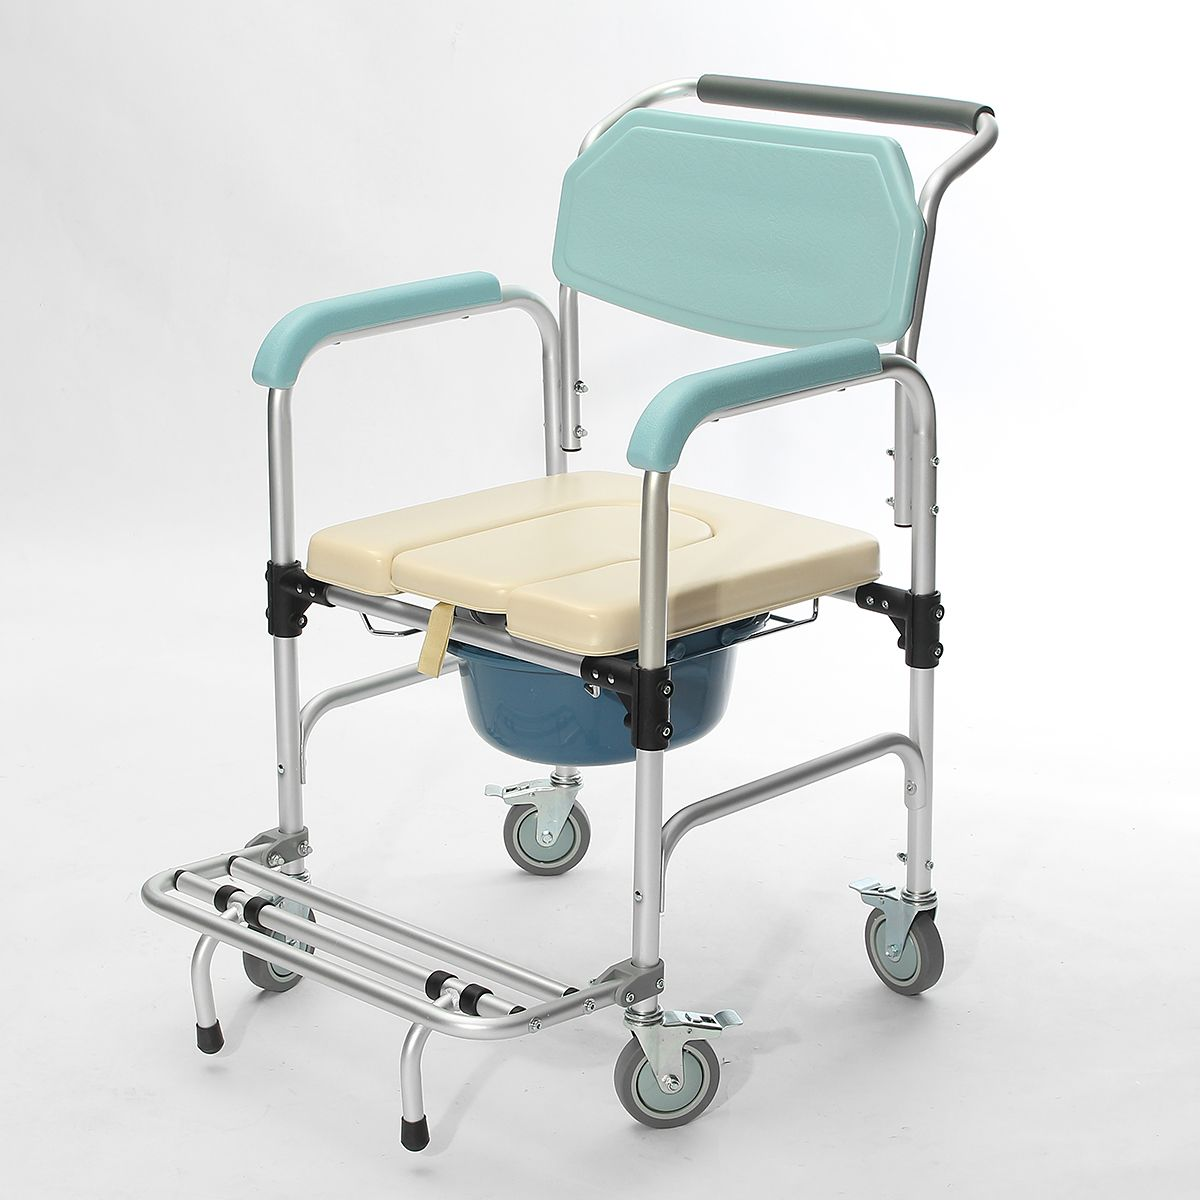 3-in-1 Commode Wheelchair Bedside Toilet & Shower Seat Bathroom ...